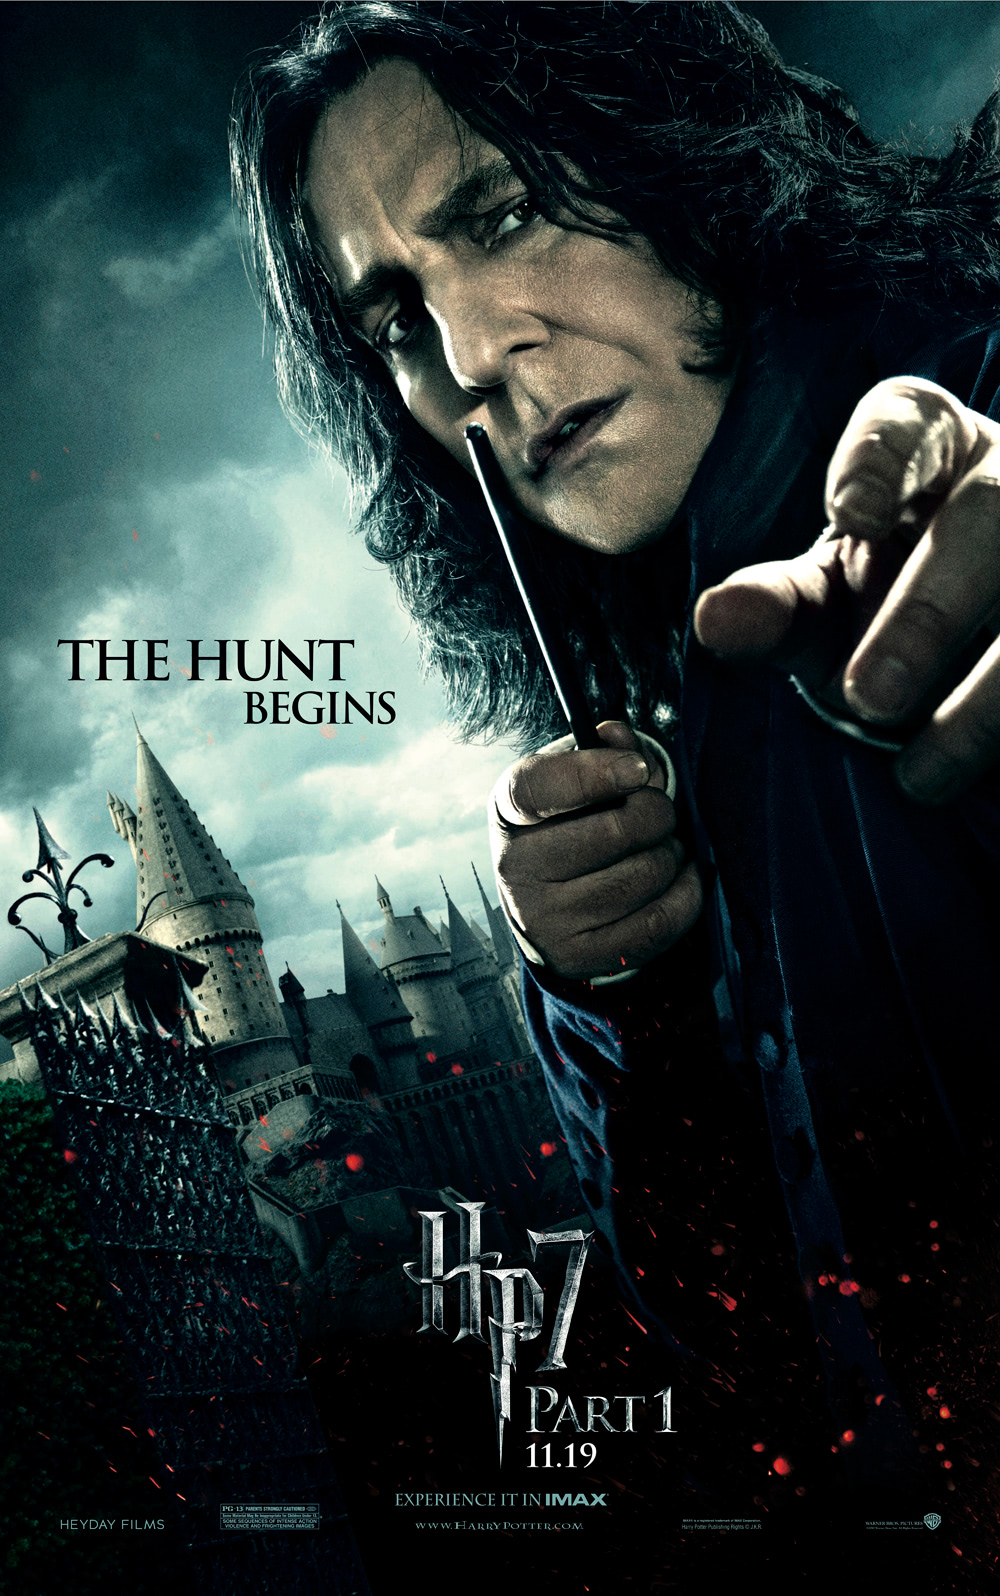 'Deathly Hallows: Part 1' Snape poster